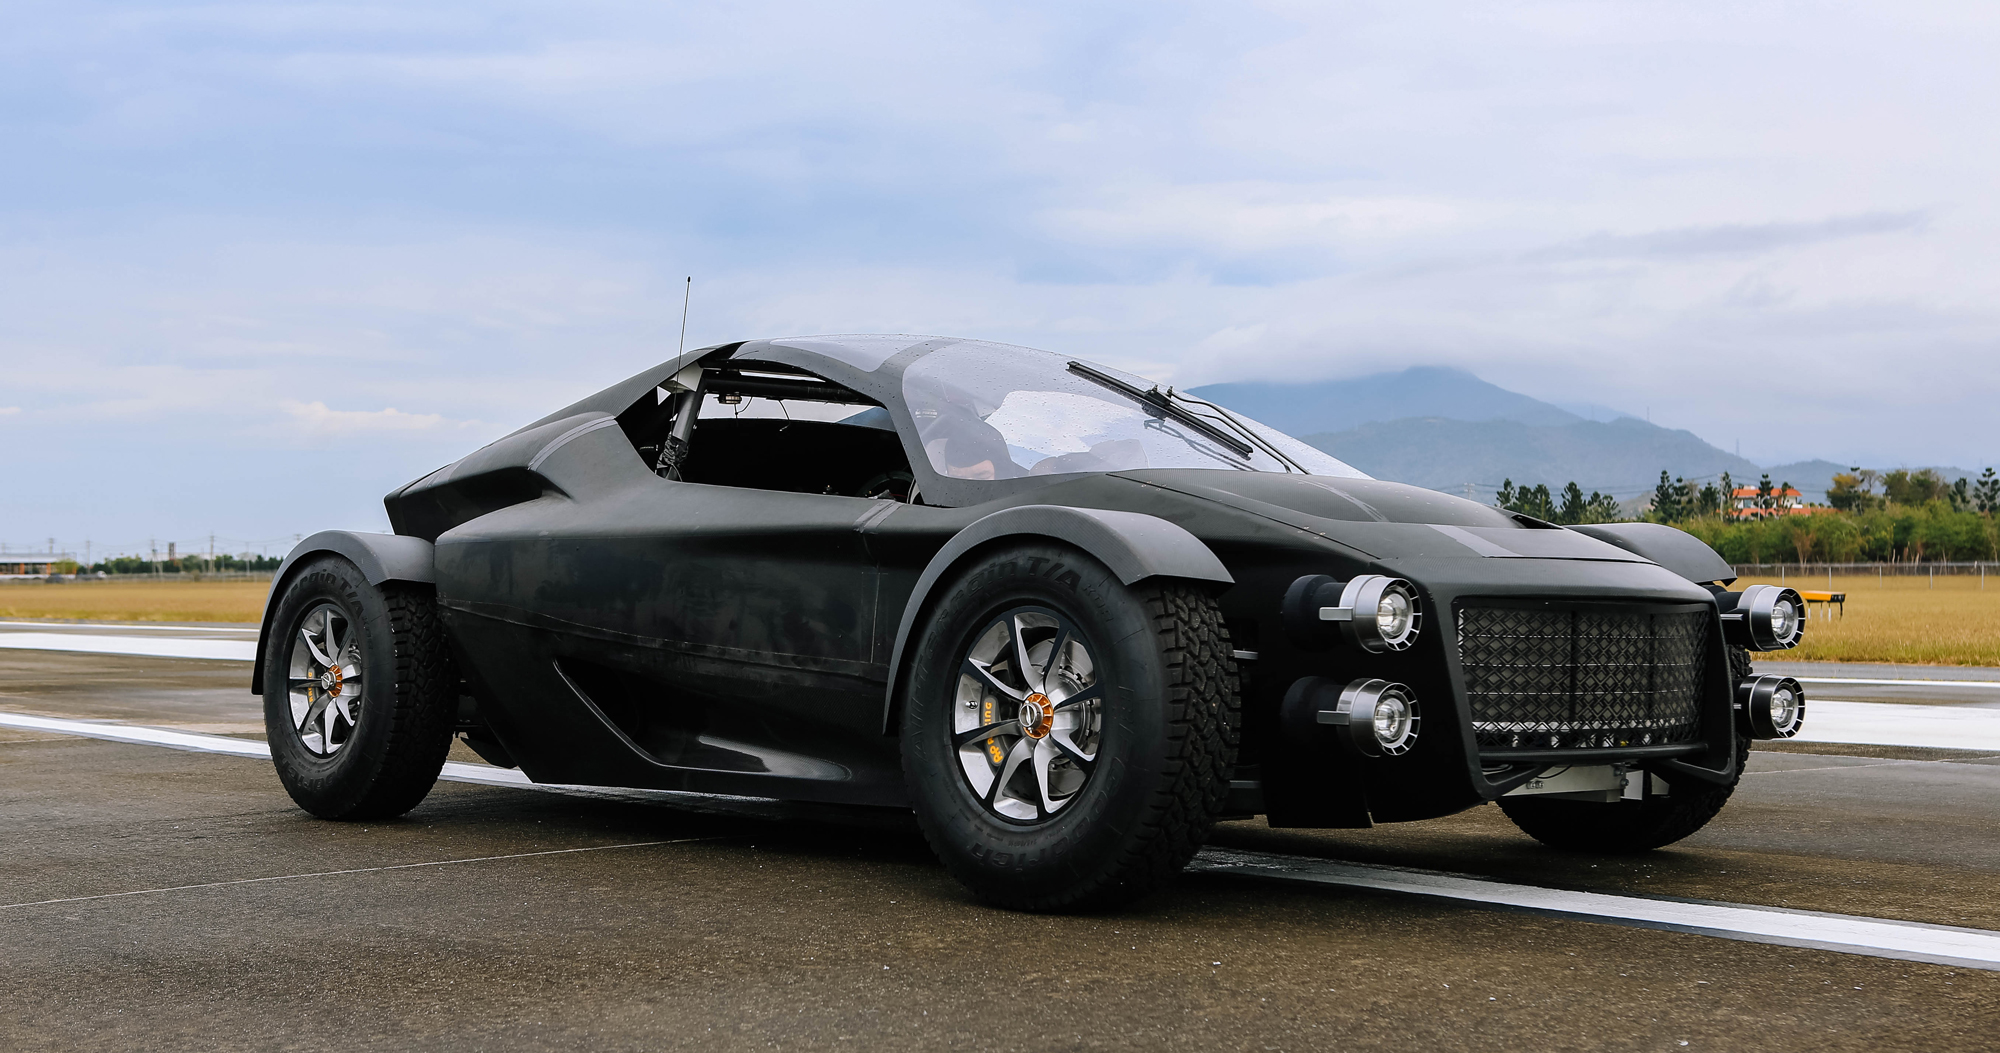 Taiwanese-built Xing Miss R overtaking Tesla Roadster 2 and